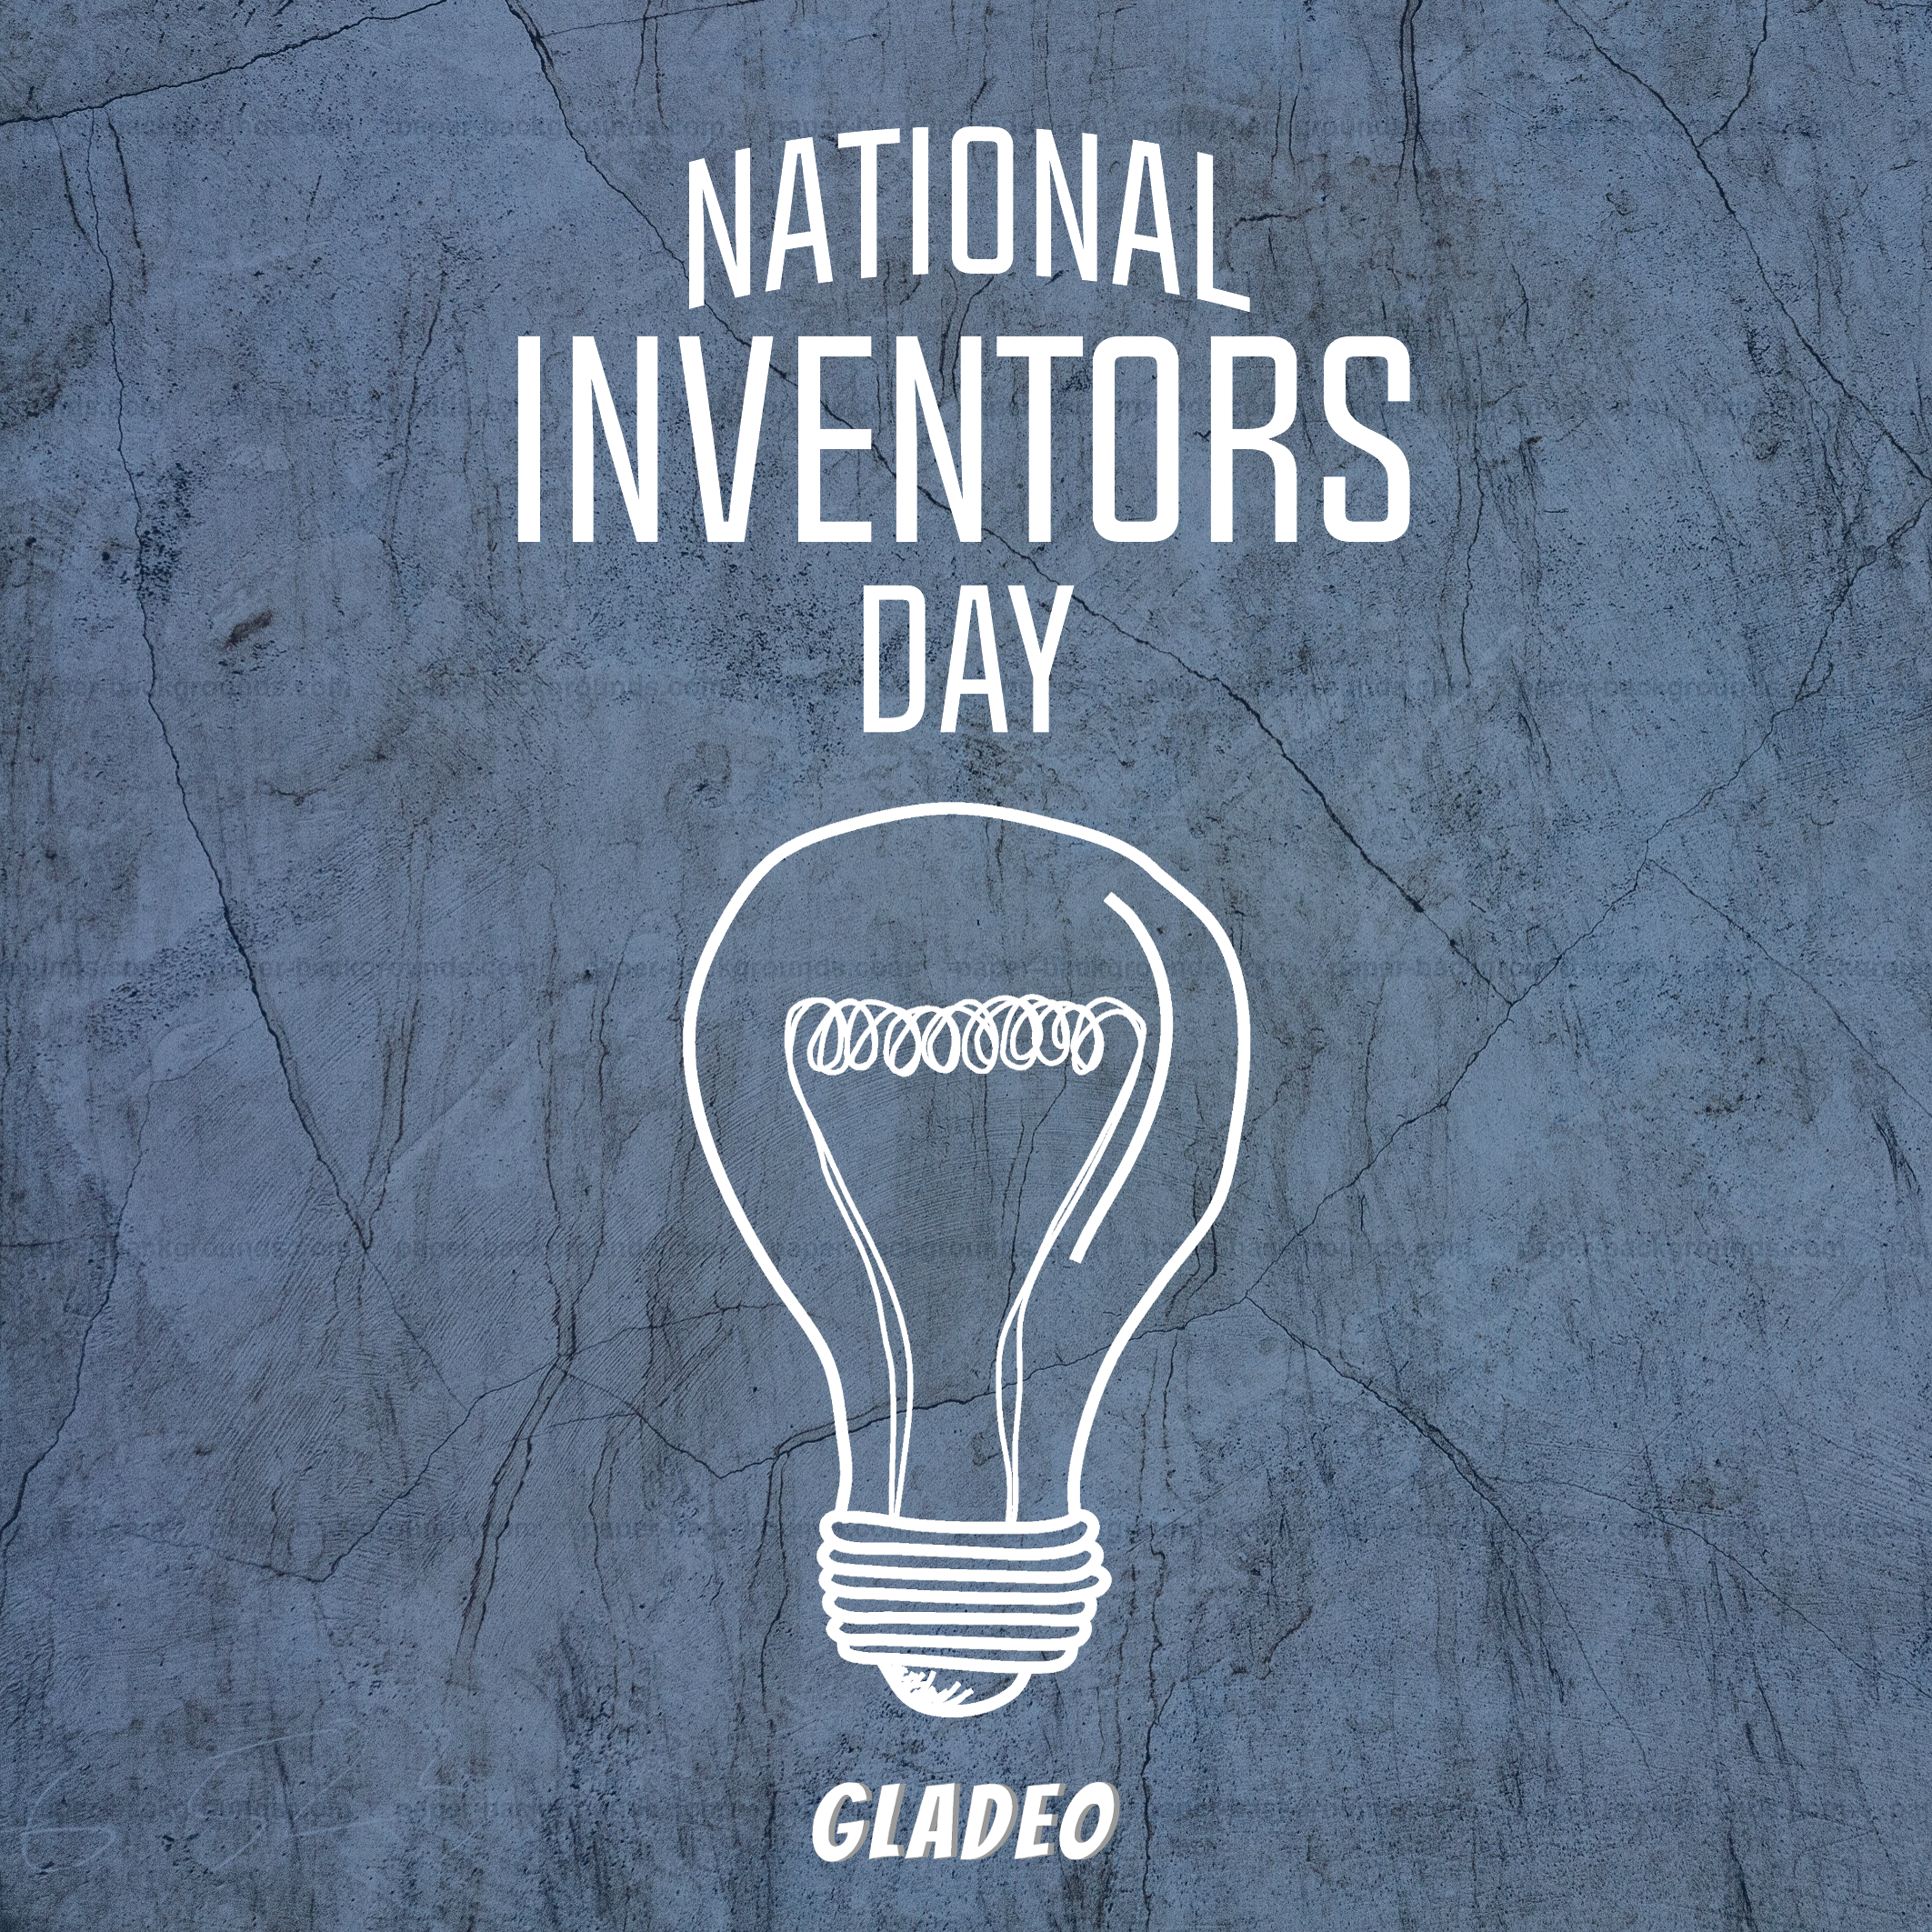 INVENTORS DAY.png